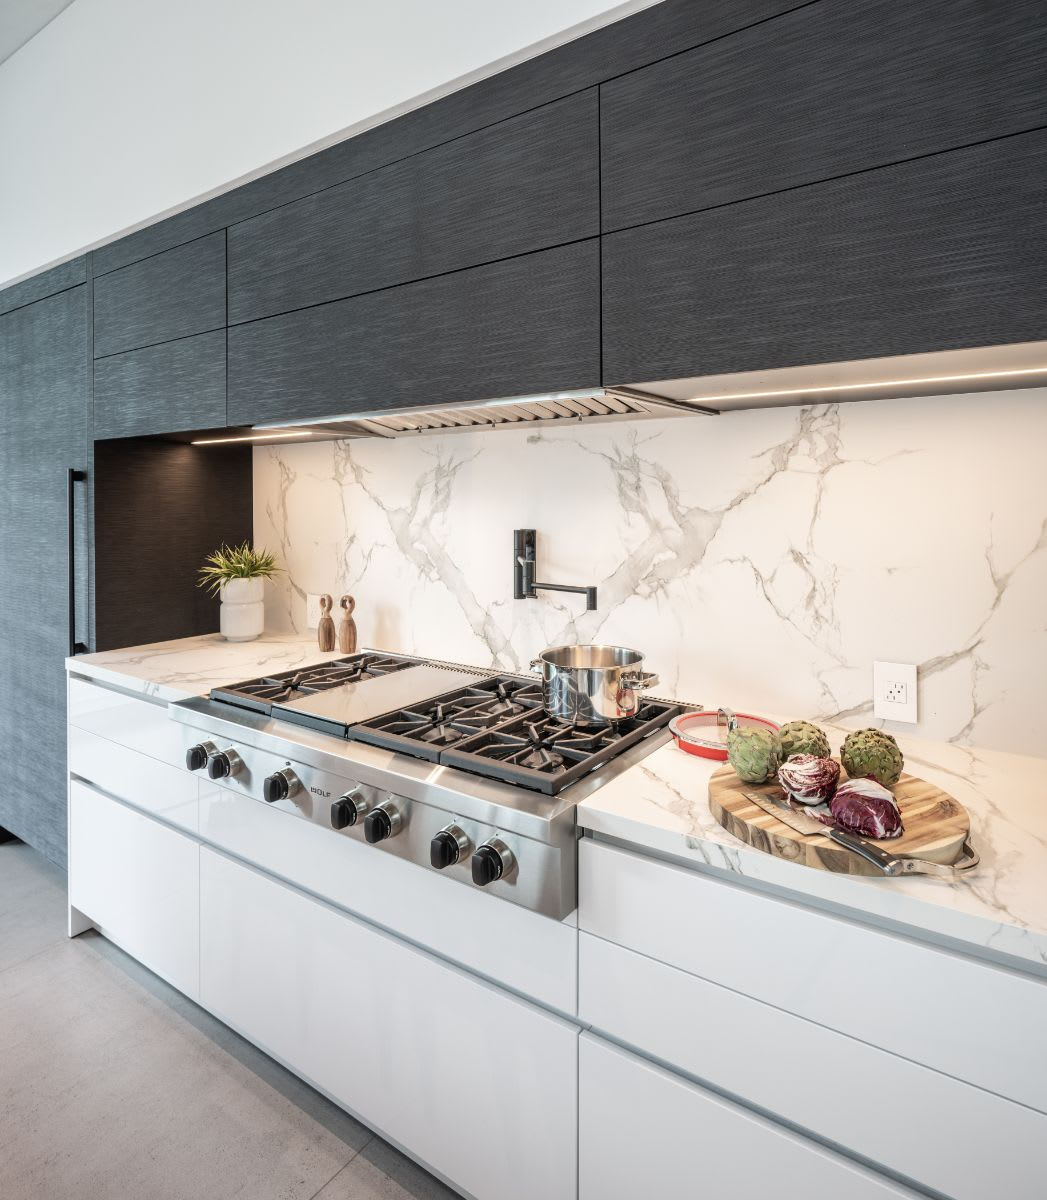 sub-zero refrigeration and wolf cooktop display at an eggersmann showroom